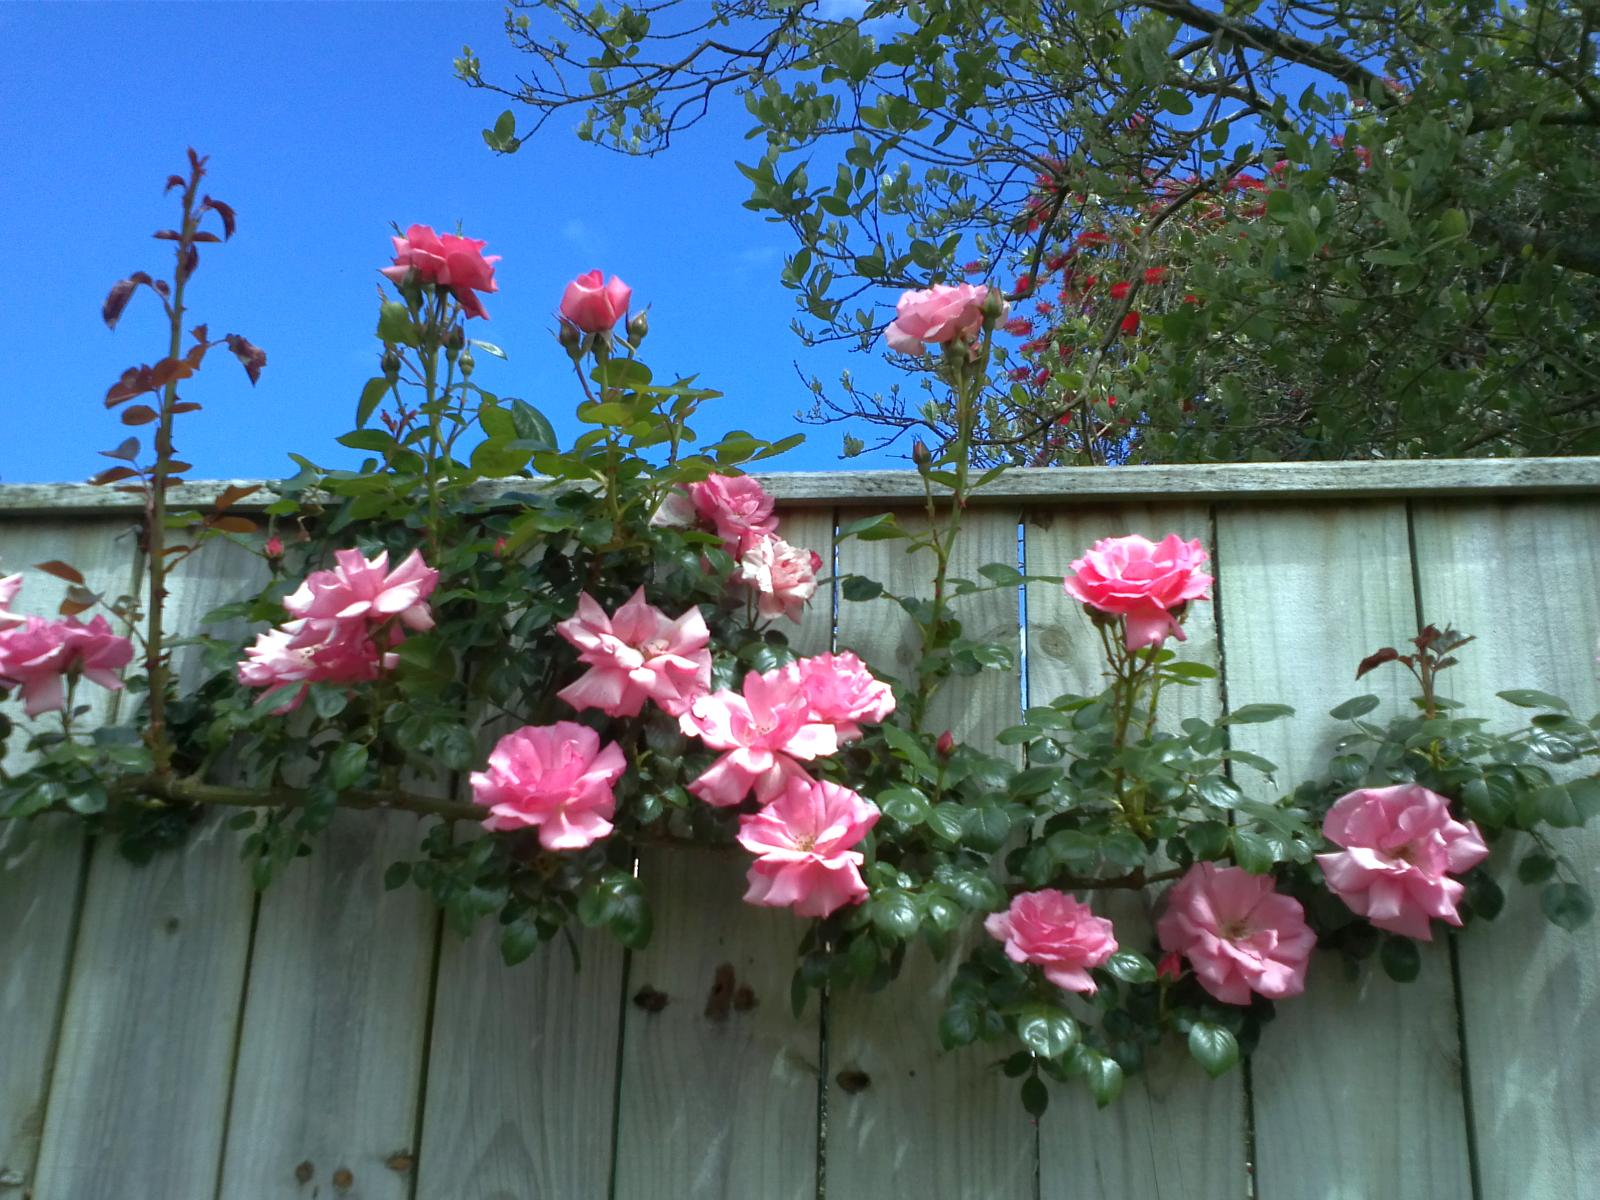 Roses on a fence in the Bason Botanical Reserve